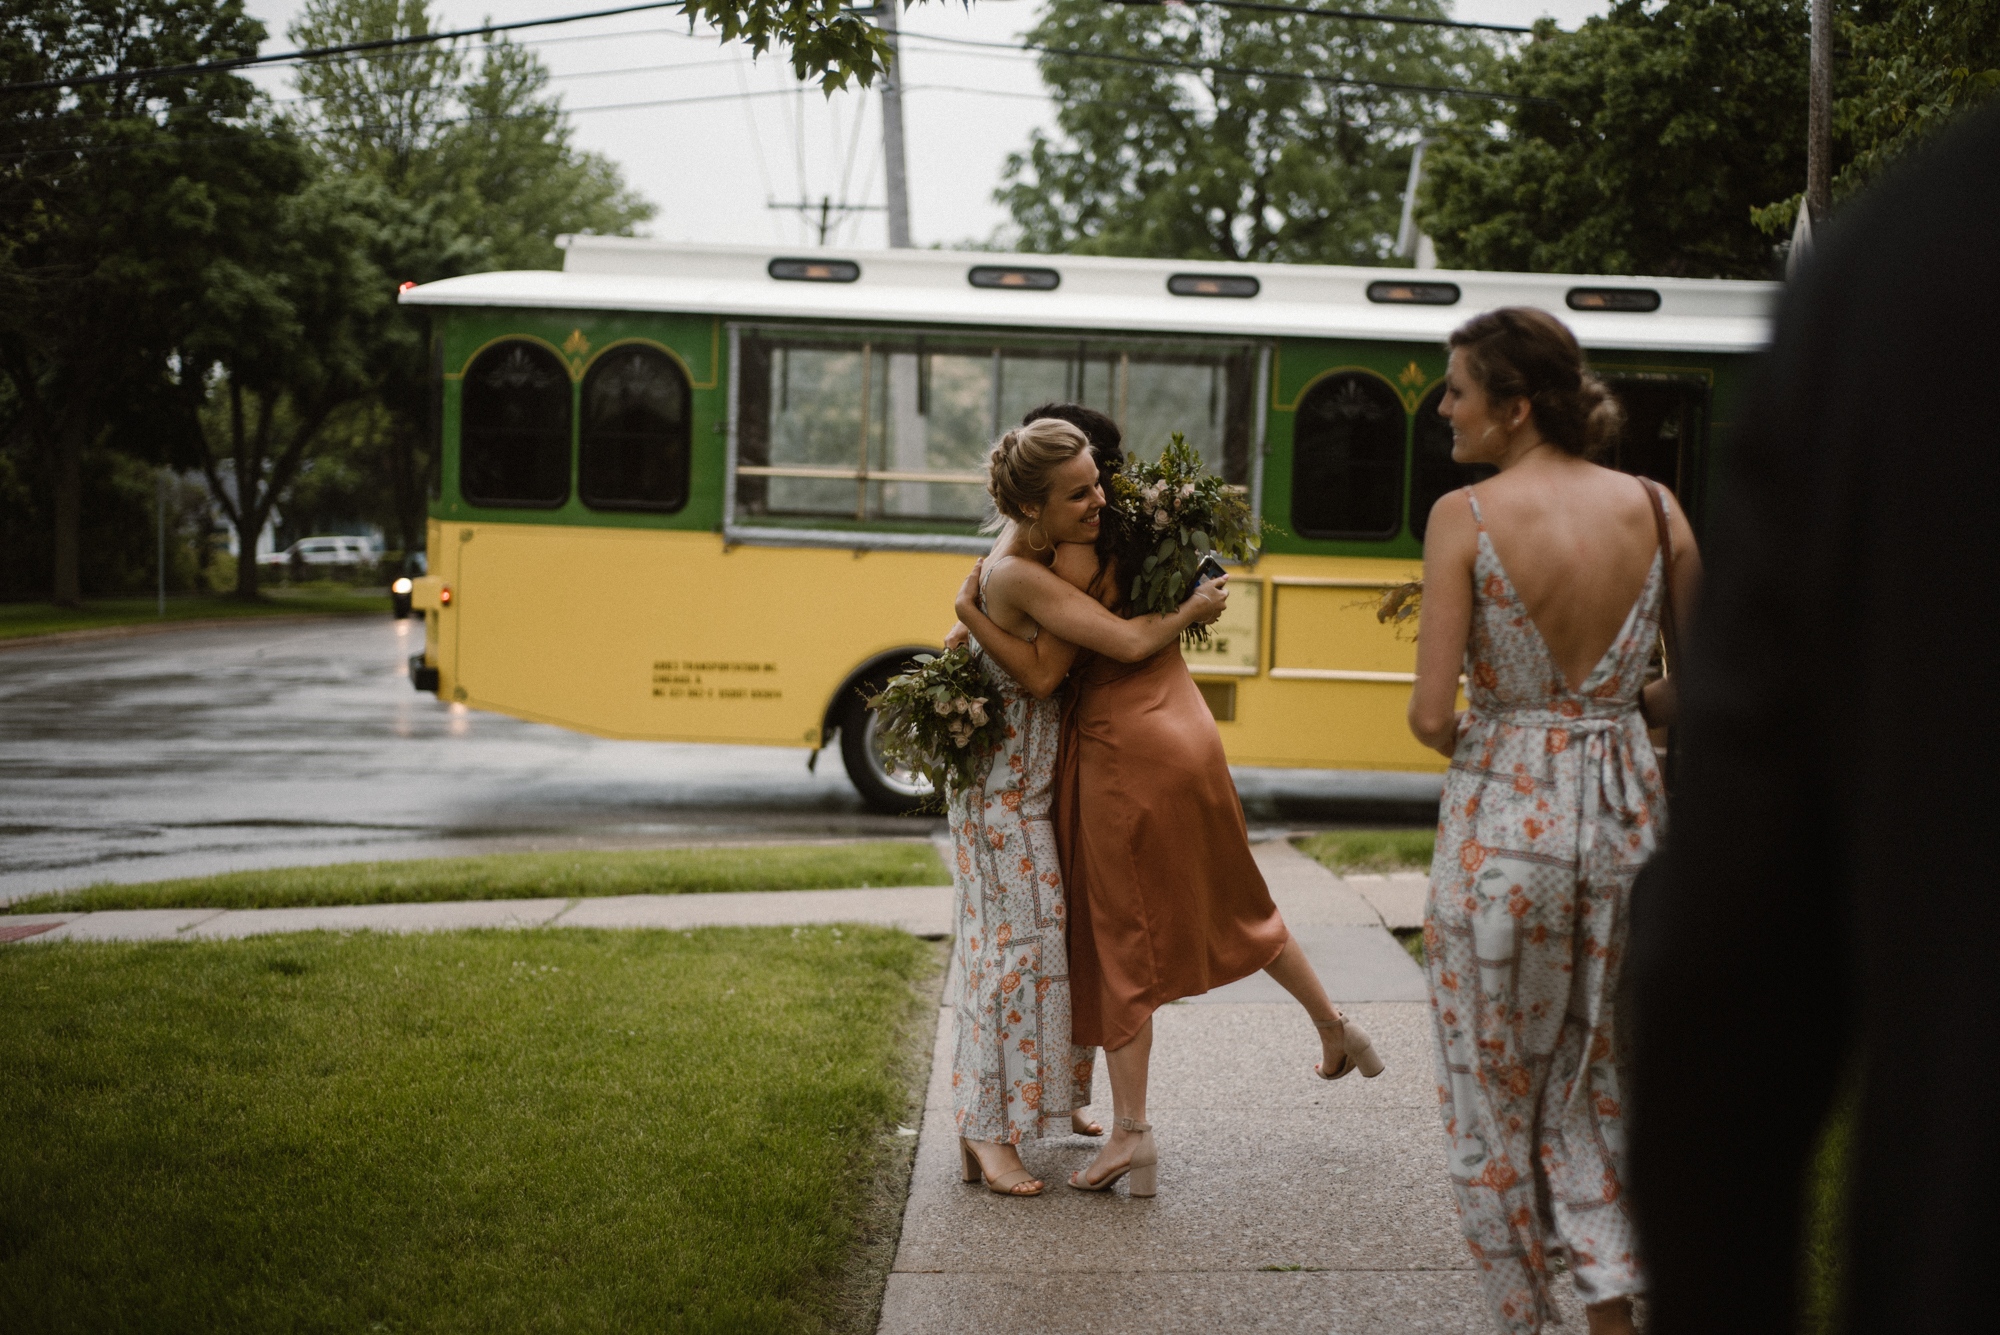 Mairi and Jude - Rainy Backyard Wedding - Intimate Wedding - Fun Reception Photos - Chicago Wedding Photographer - Catholic Wedding - White Sails Creative - Virginia Backyard Wedding Photographer_25.jpg